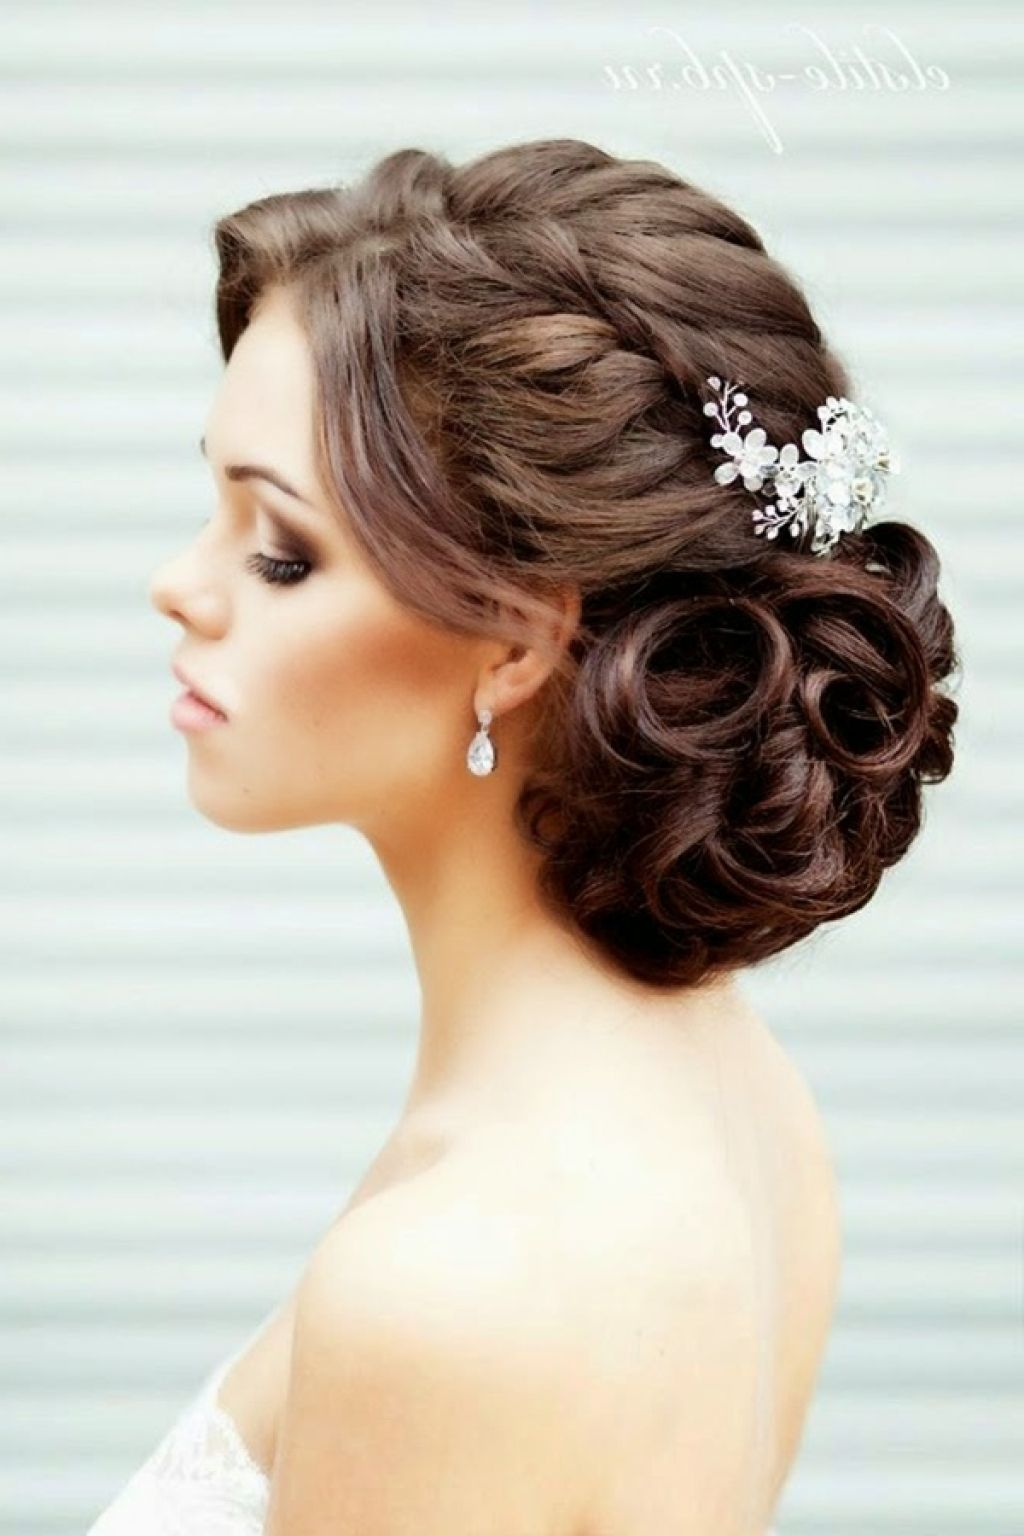 3 easy updo hairstyles for long hair hairstyle tips bridesmaid wedding hairstyles for long hair